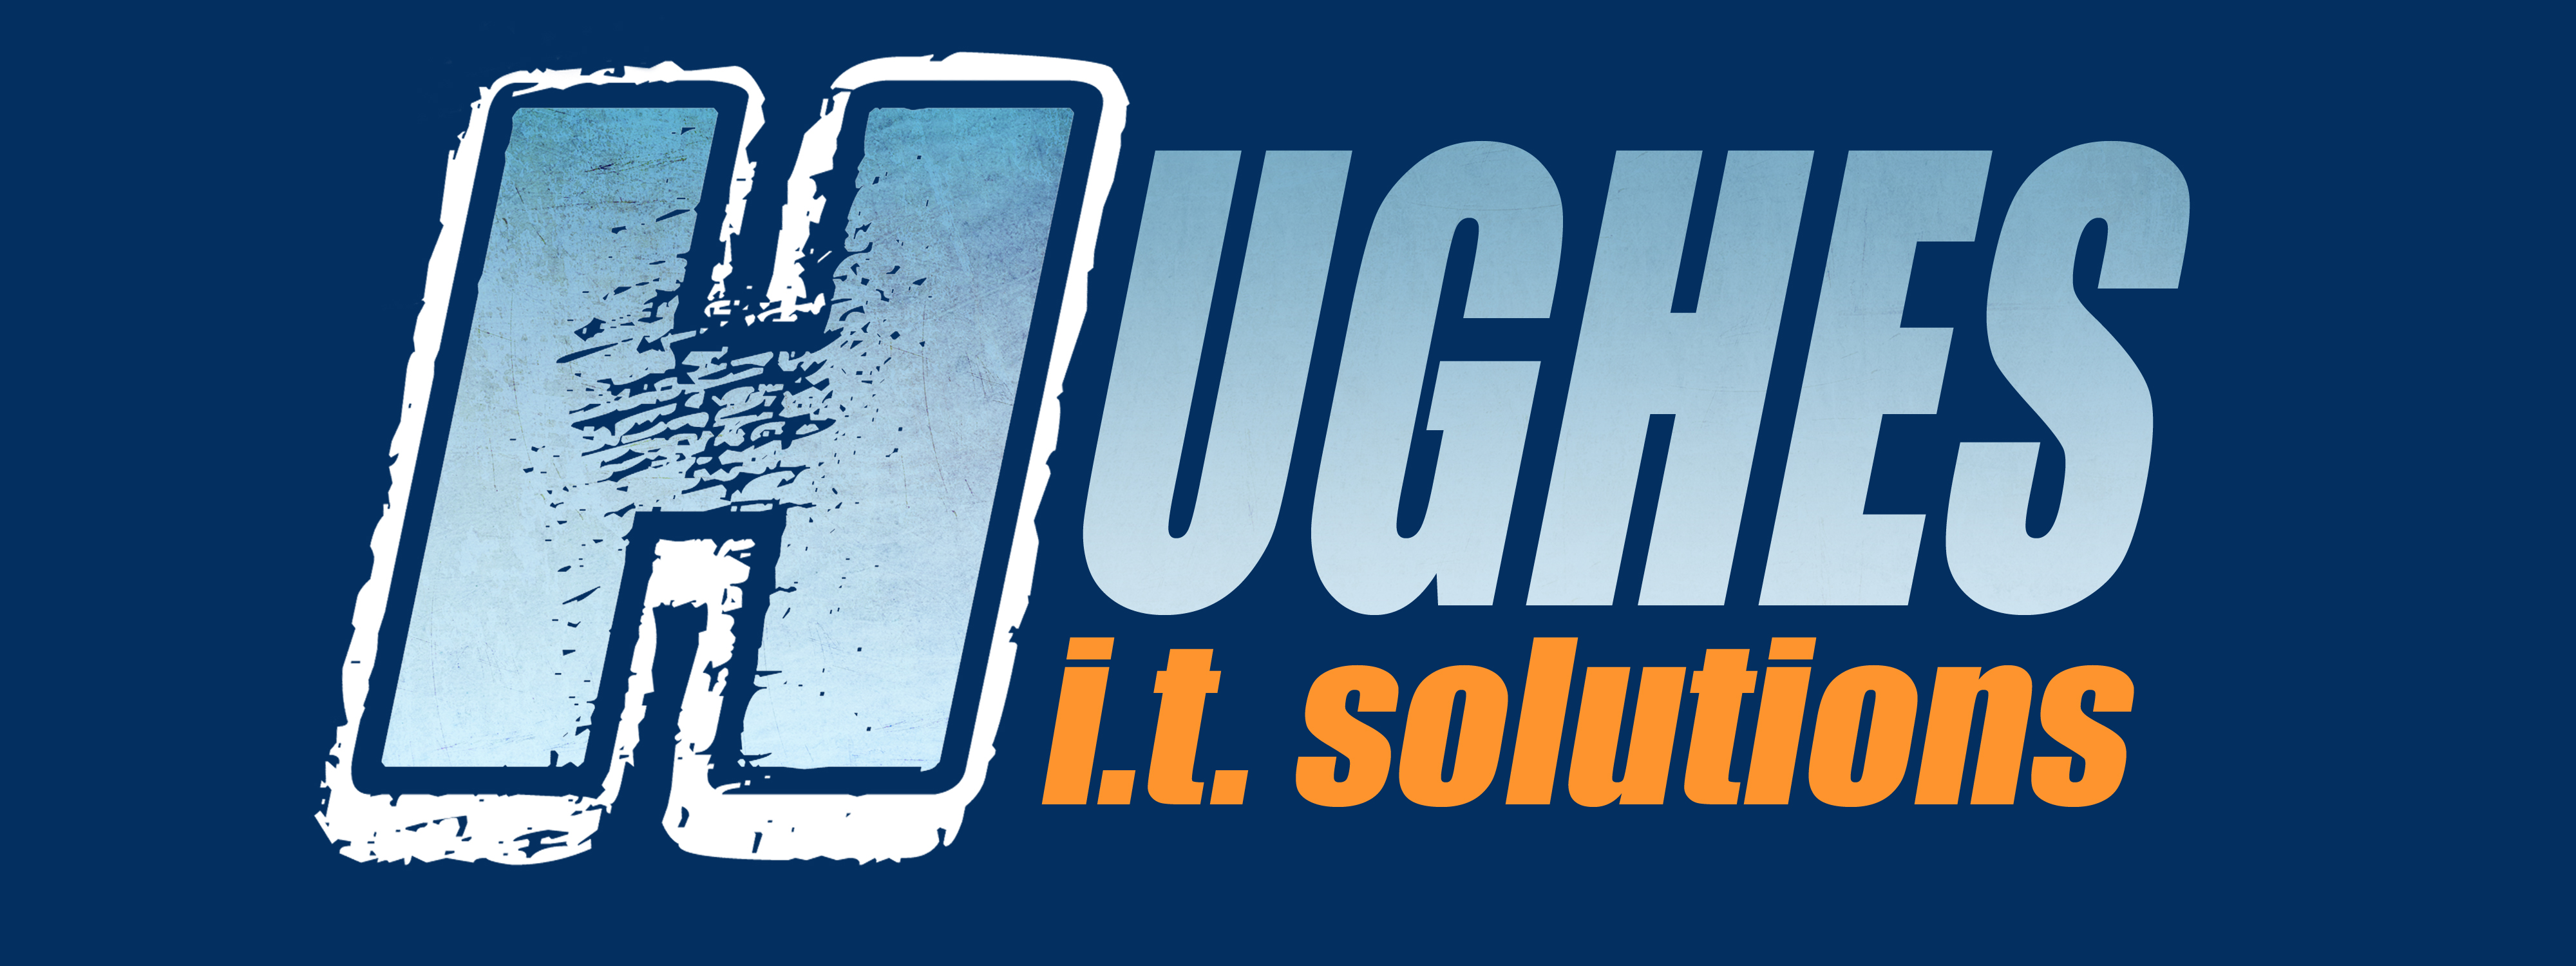 Hughes I.T. Solutions Inc